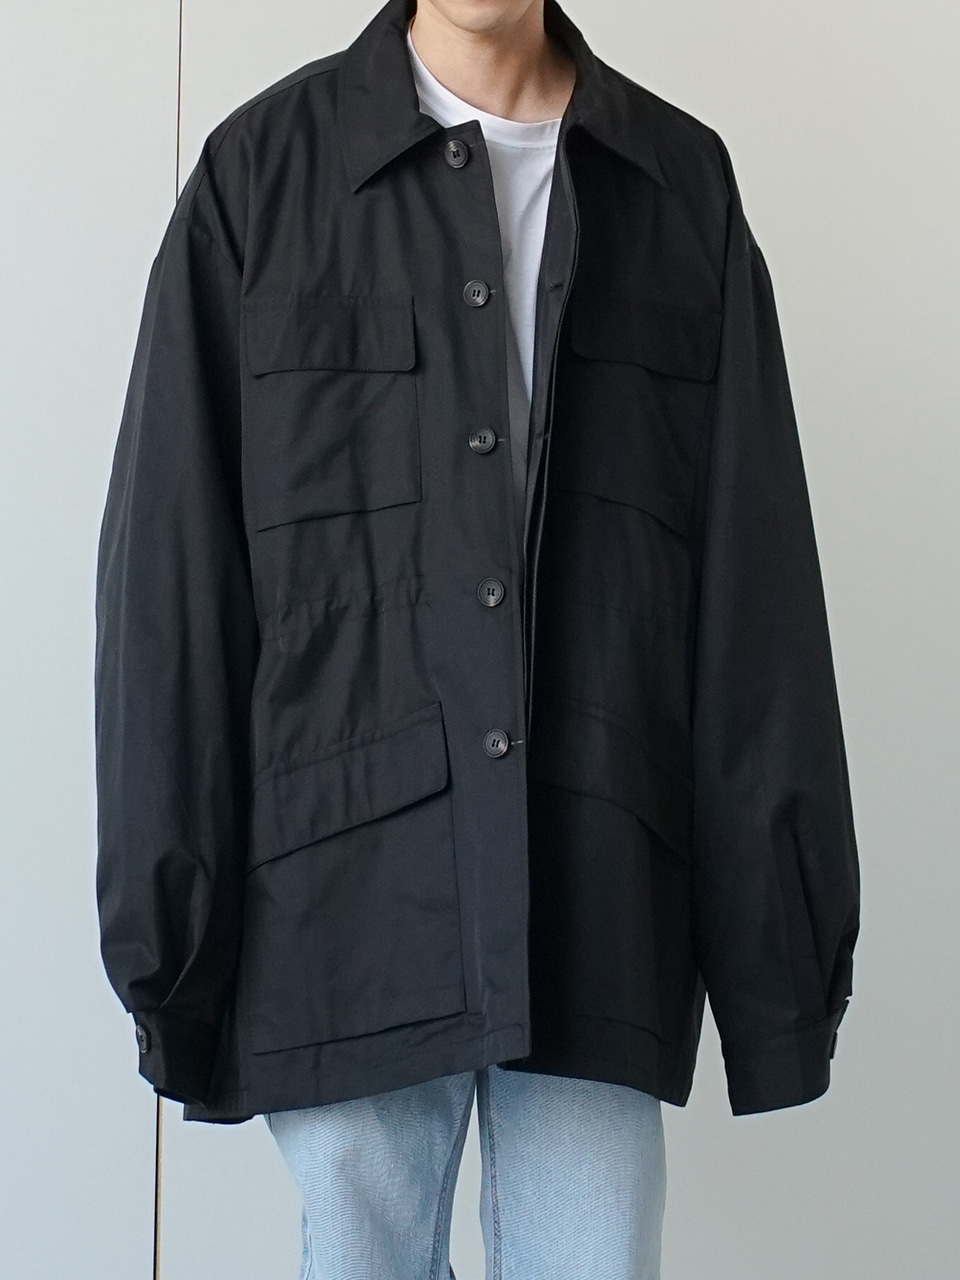 Garde Over M-65 Jacket (2color)